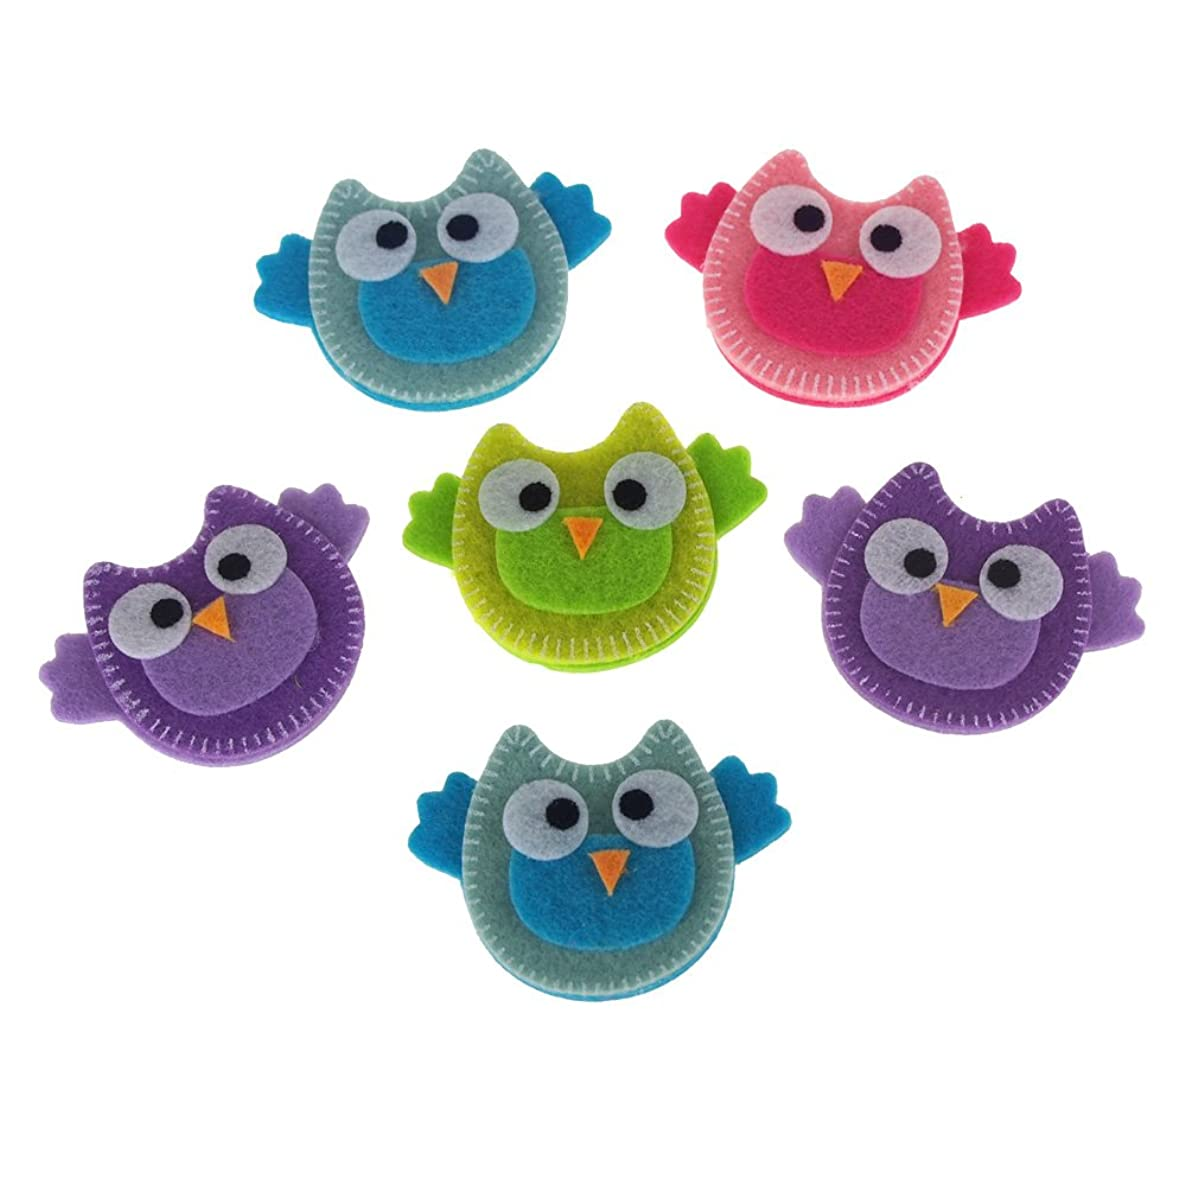 Homeford Self-Adhesive Pretty Owls Felt Die Cuts, 2-Inch, 6-Count